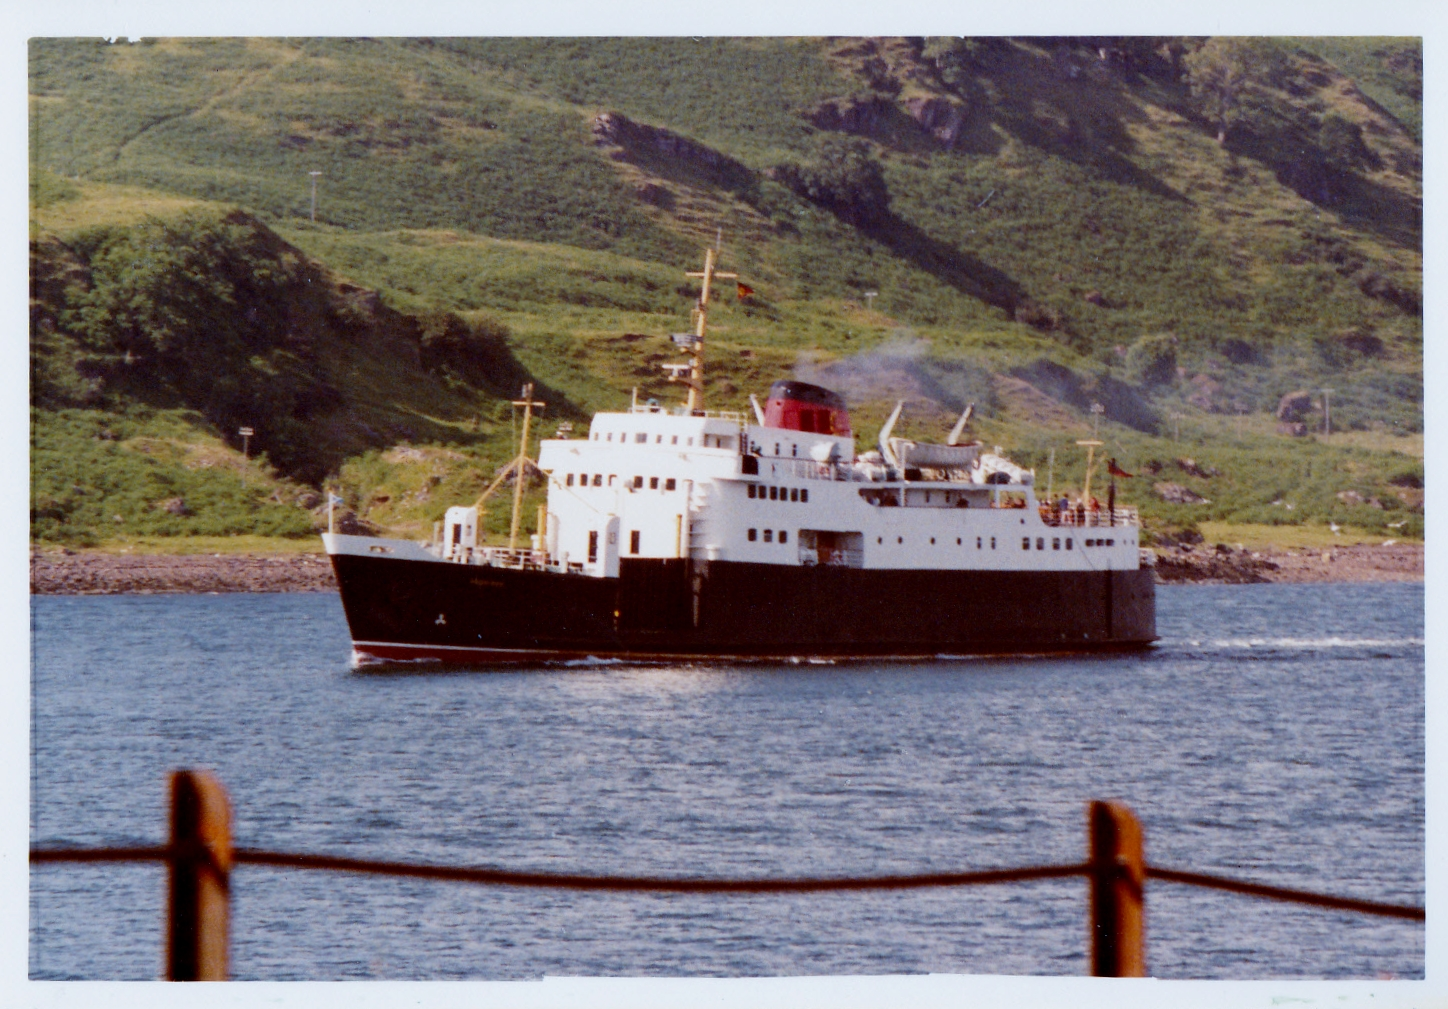 In the Sound of Kerrera